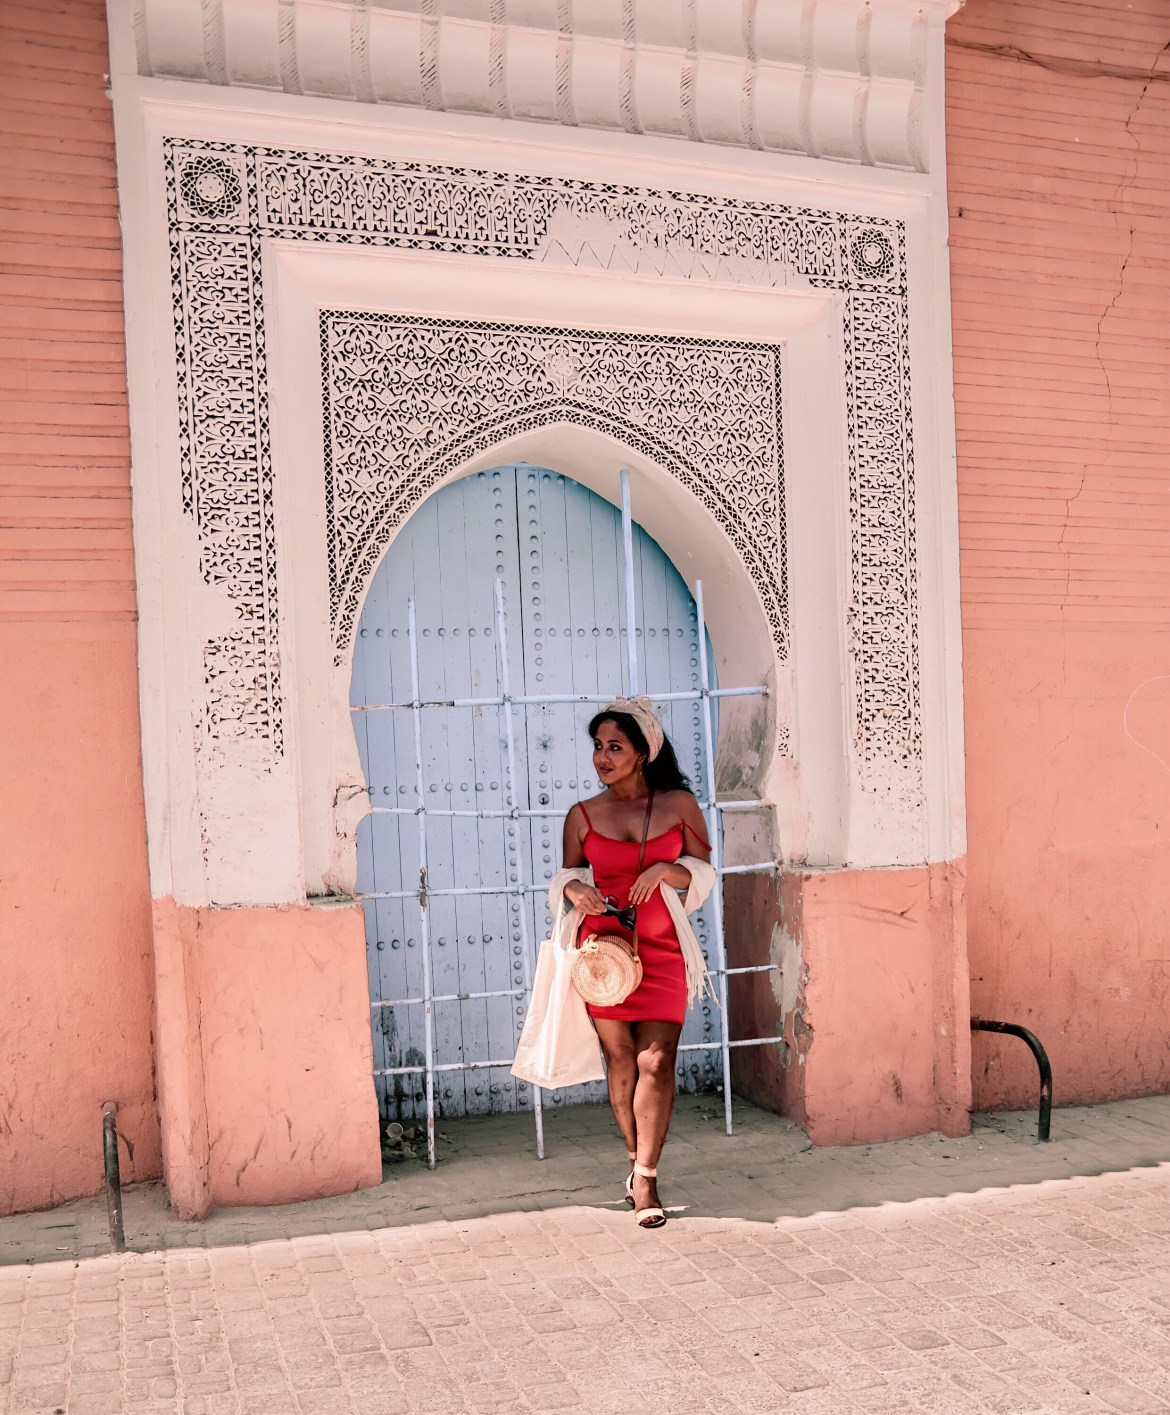 What-Color-Shoes-To-Wear-With-A-Red-Dress-How-To-Wear-A-Summer-Red-Dress-What-To-Wear-In-Morocco-Marrakech-Paris-Chic-Style-2